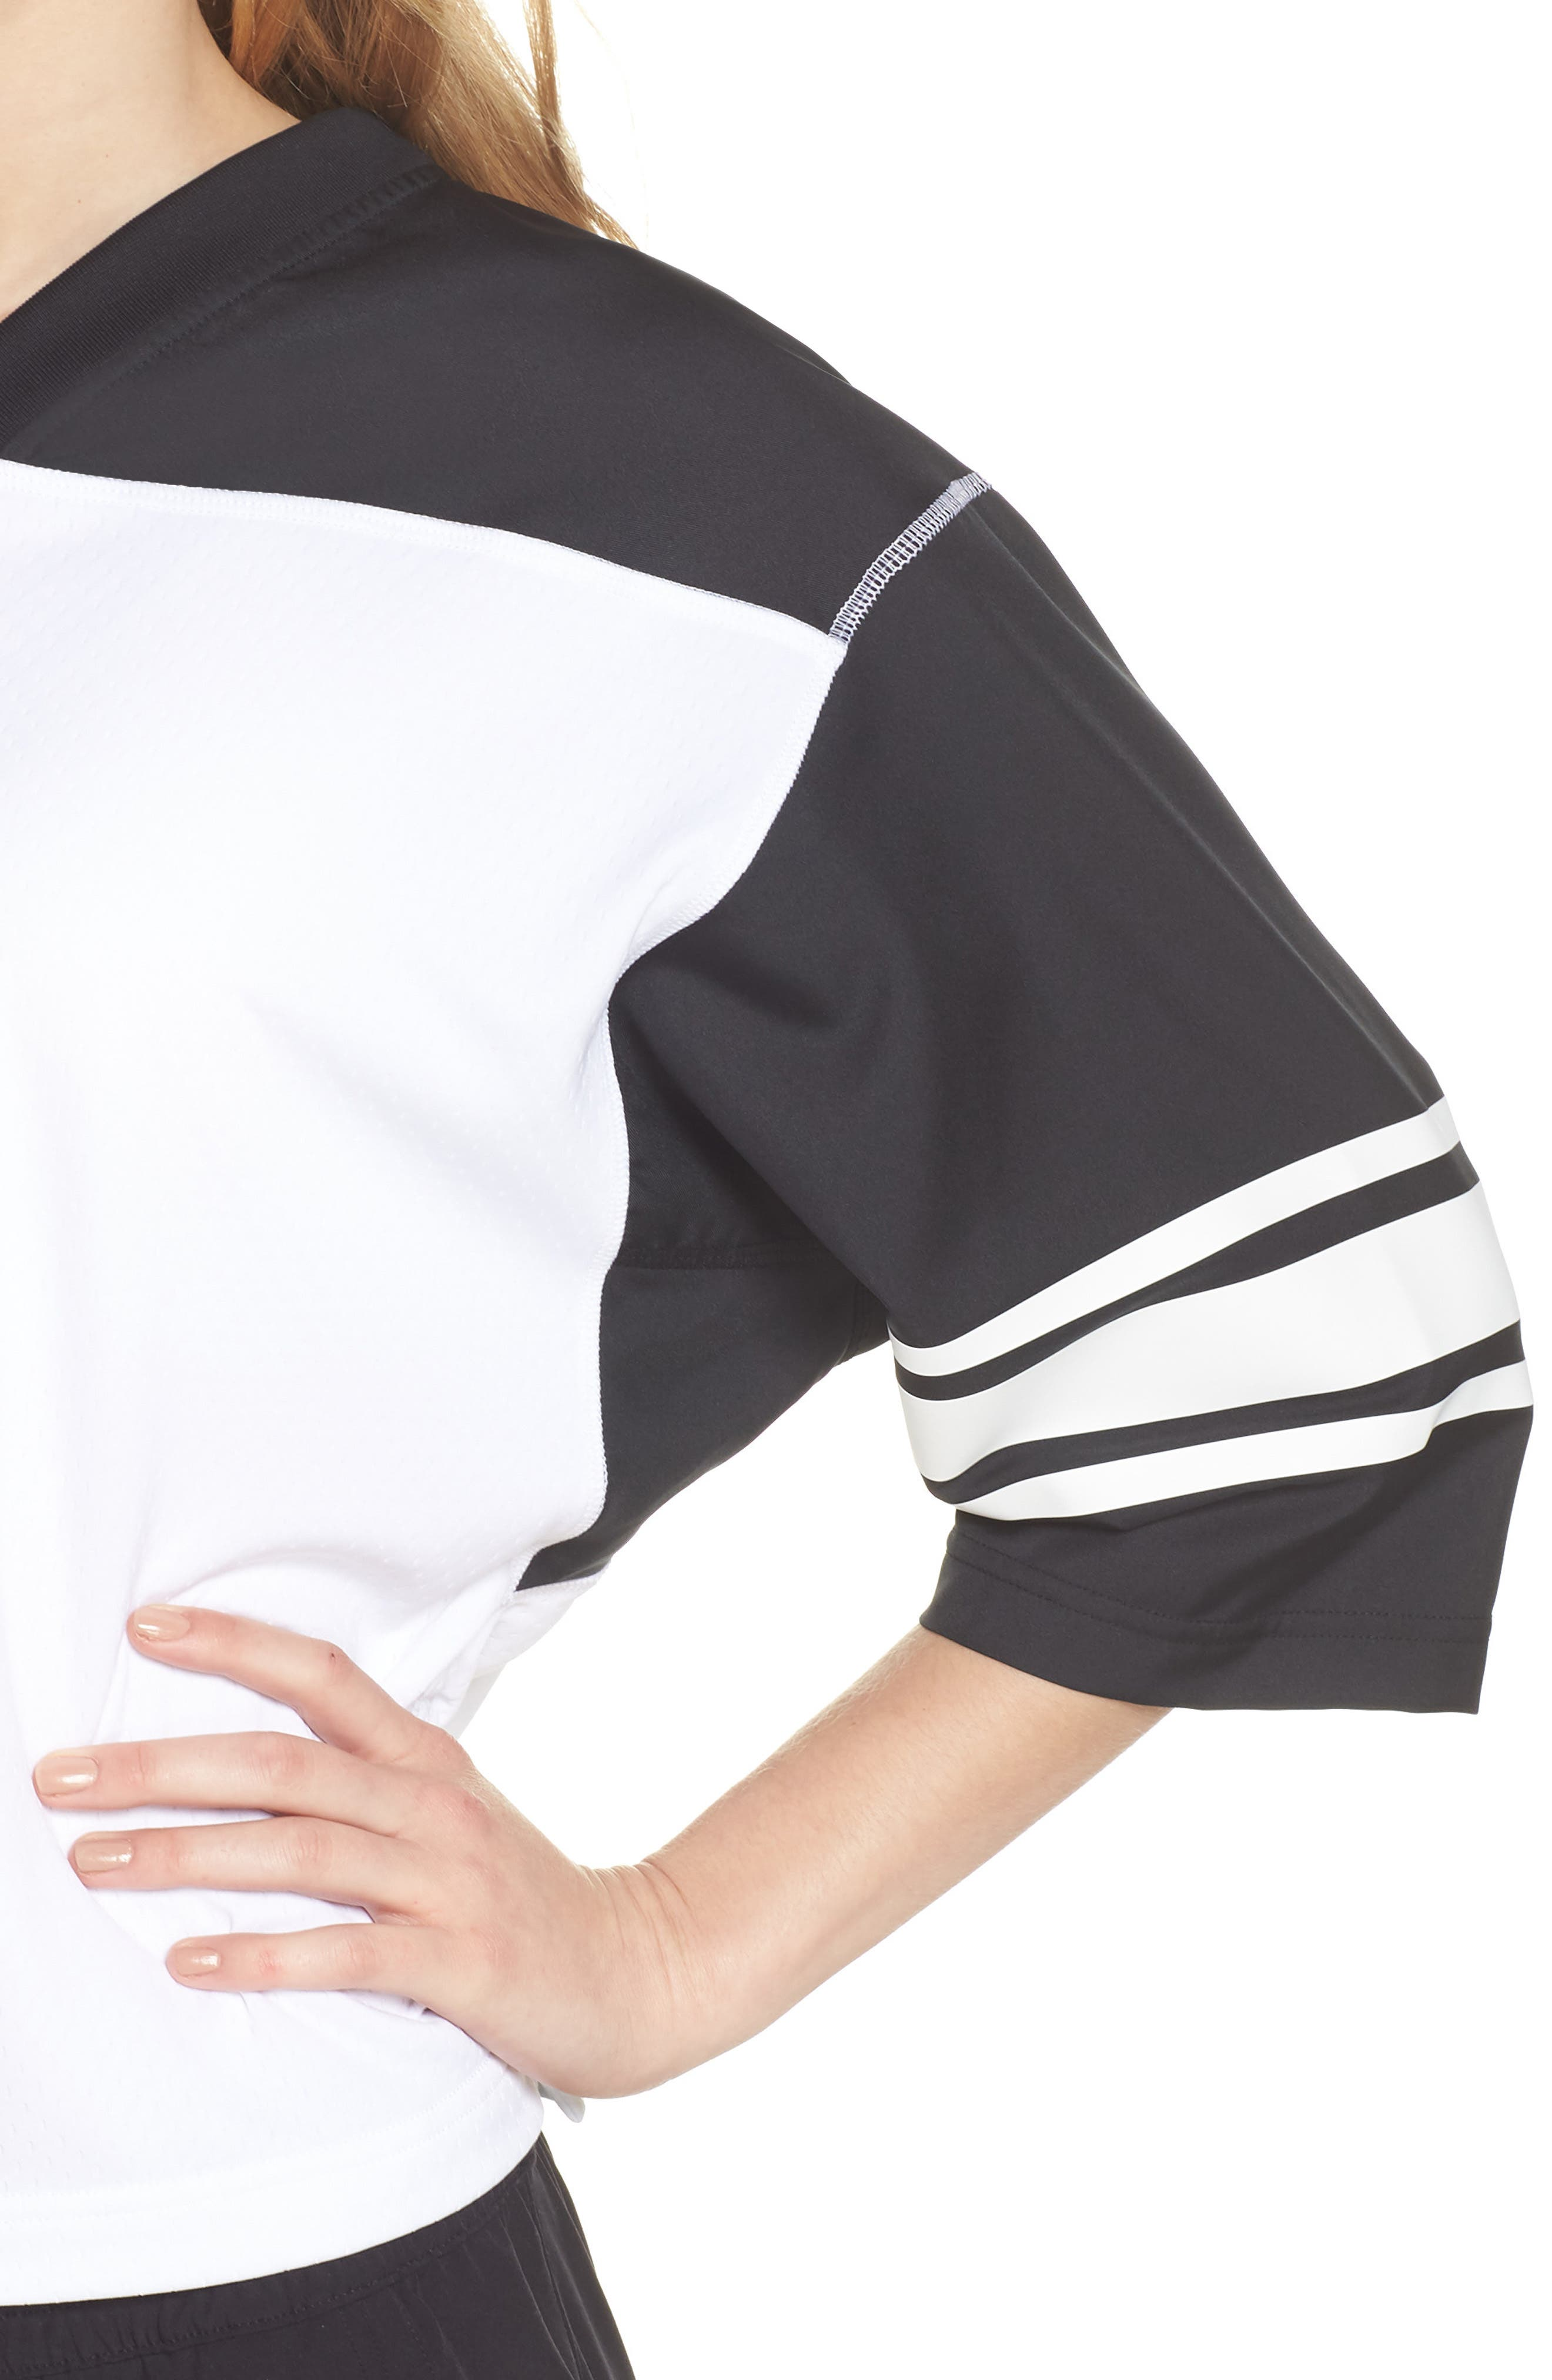 NikeLab Collection Football Top,                             Alternate thumbnail 4, color,                             BLACK/ WHITE/ BLACK